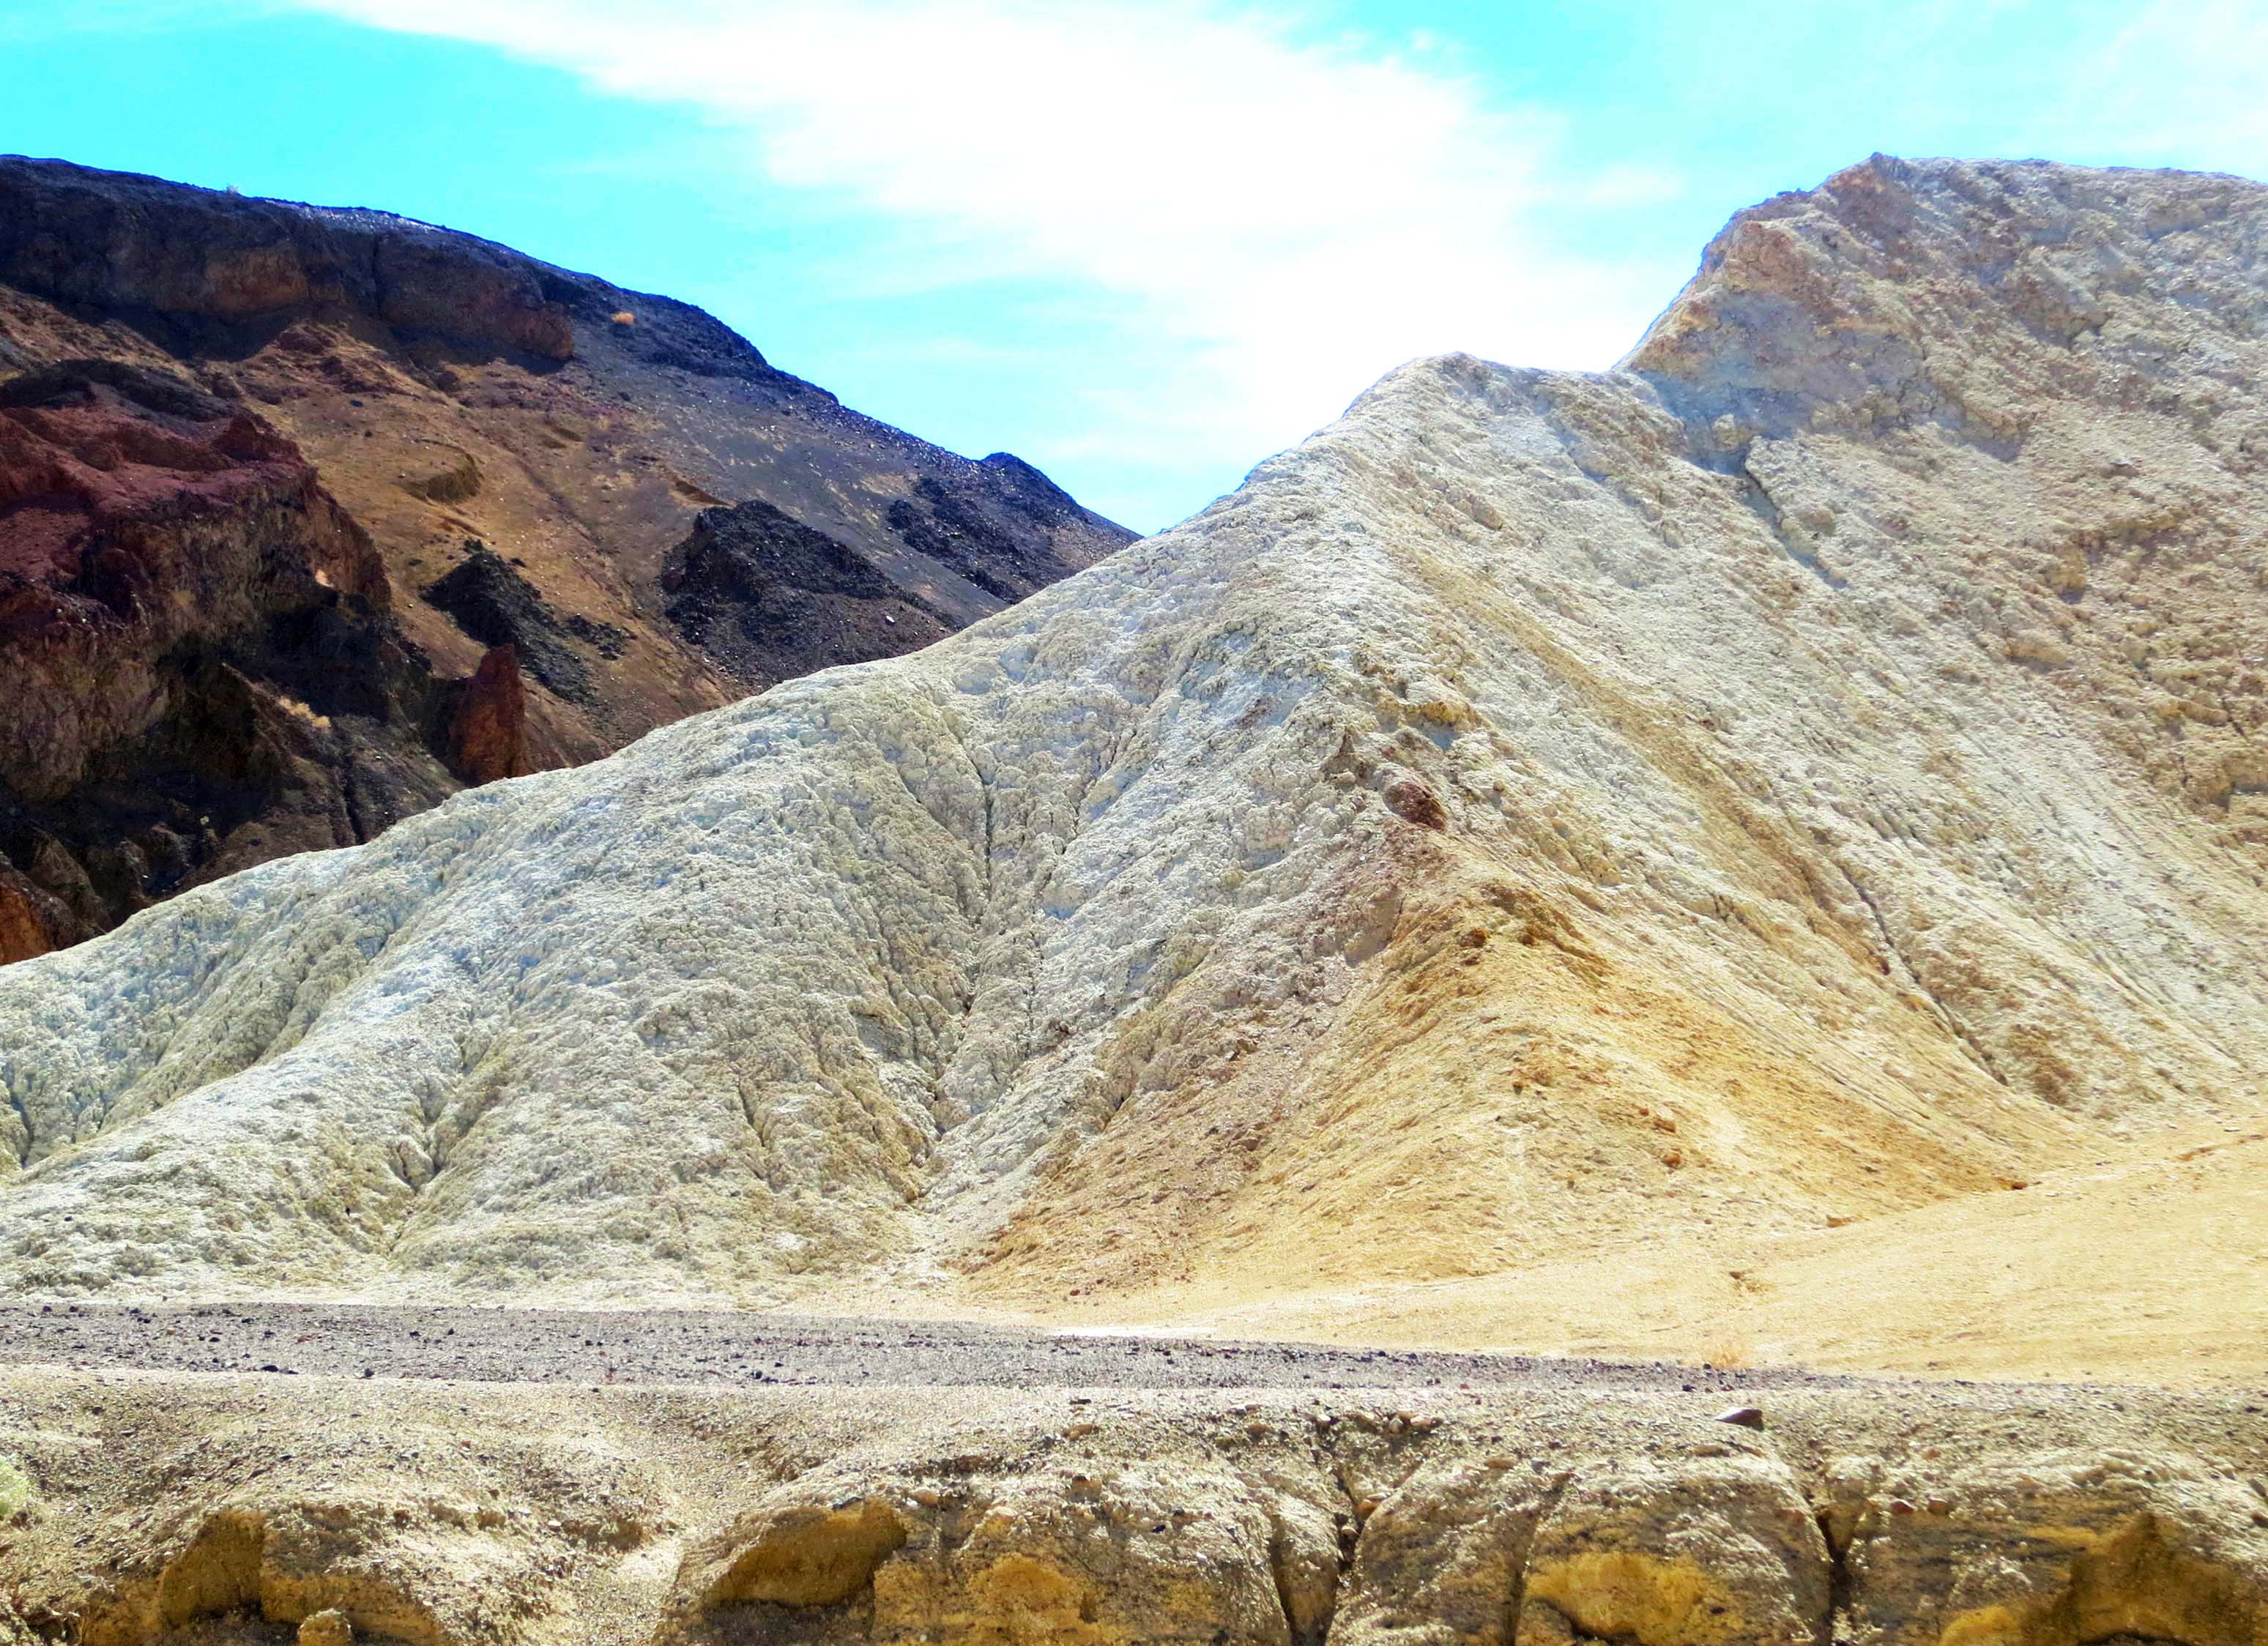 View along the Twenty Mule Team Canyon road in Death Valley.